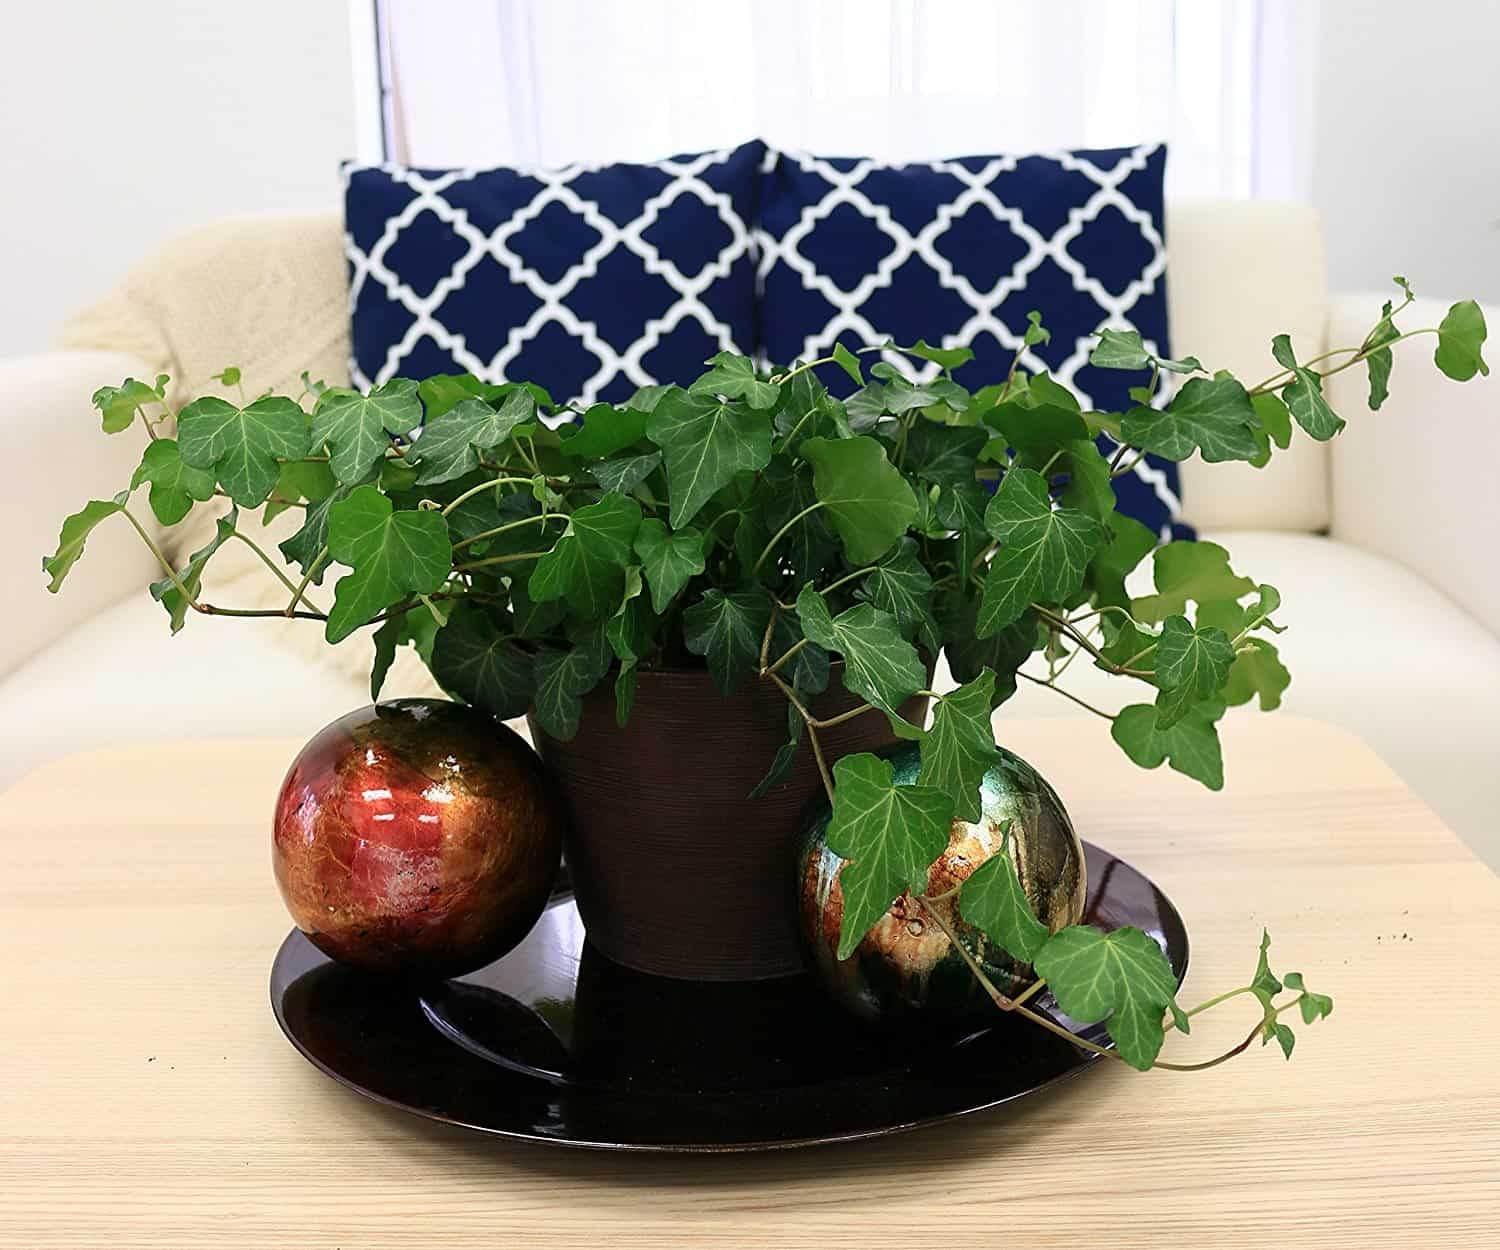 English ivy for air purification